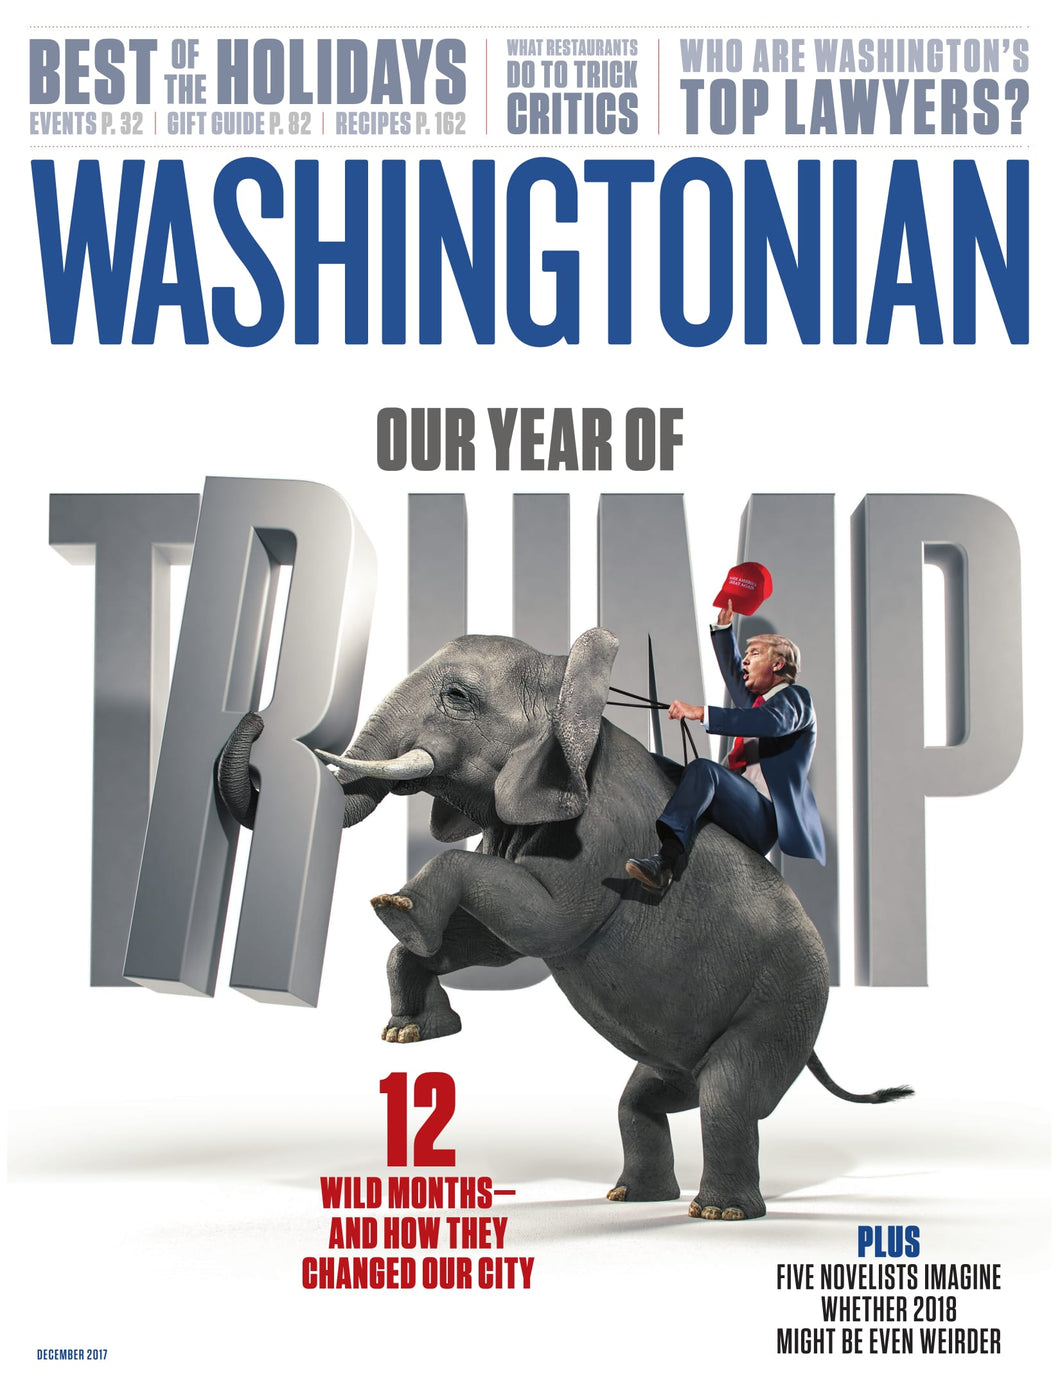 Washingtonian: December 2017 -  Year of Trump